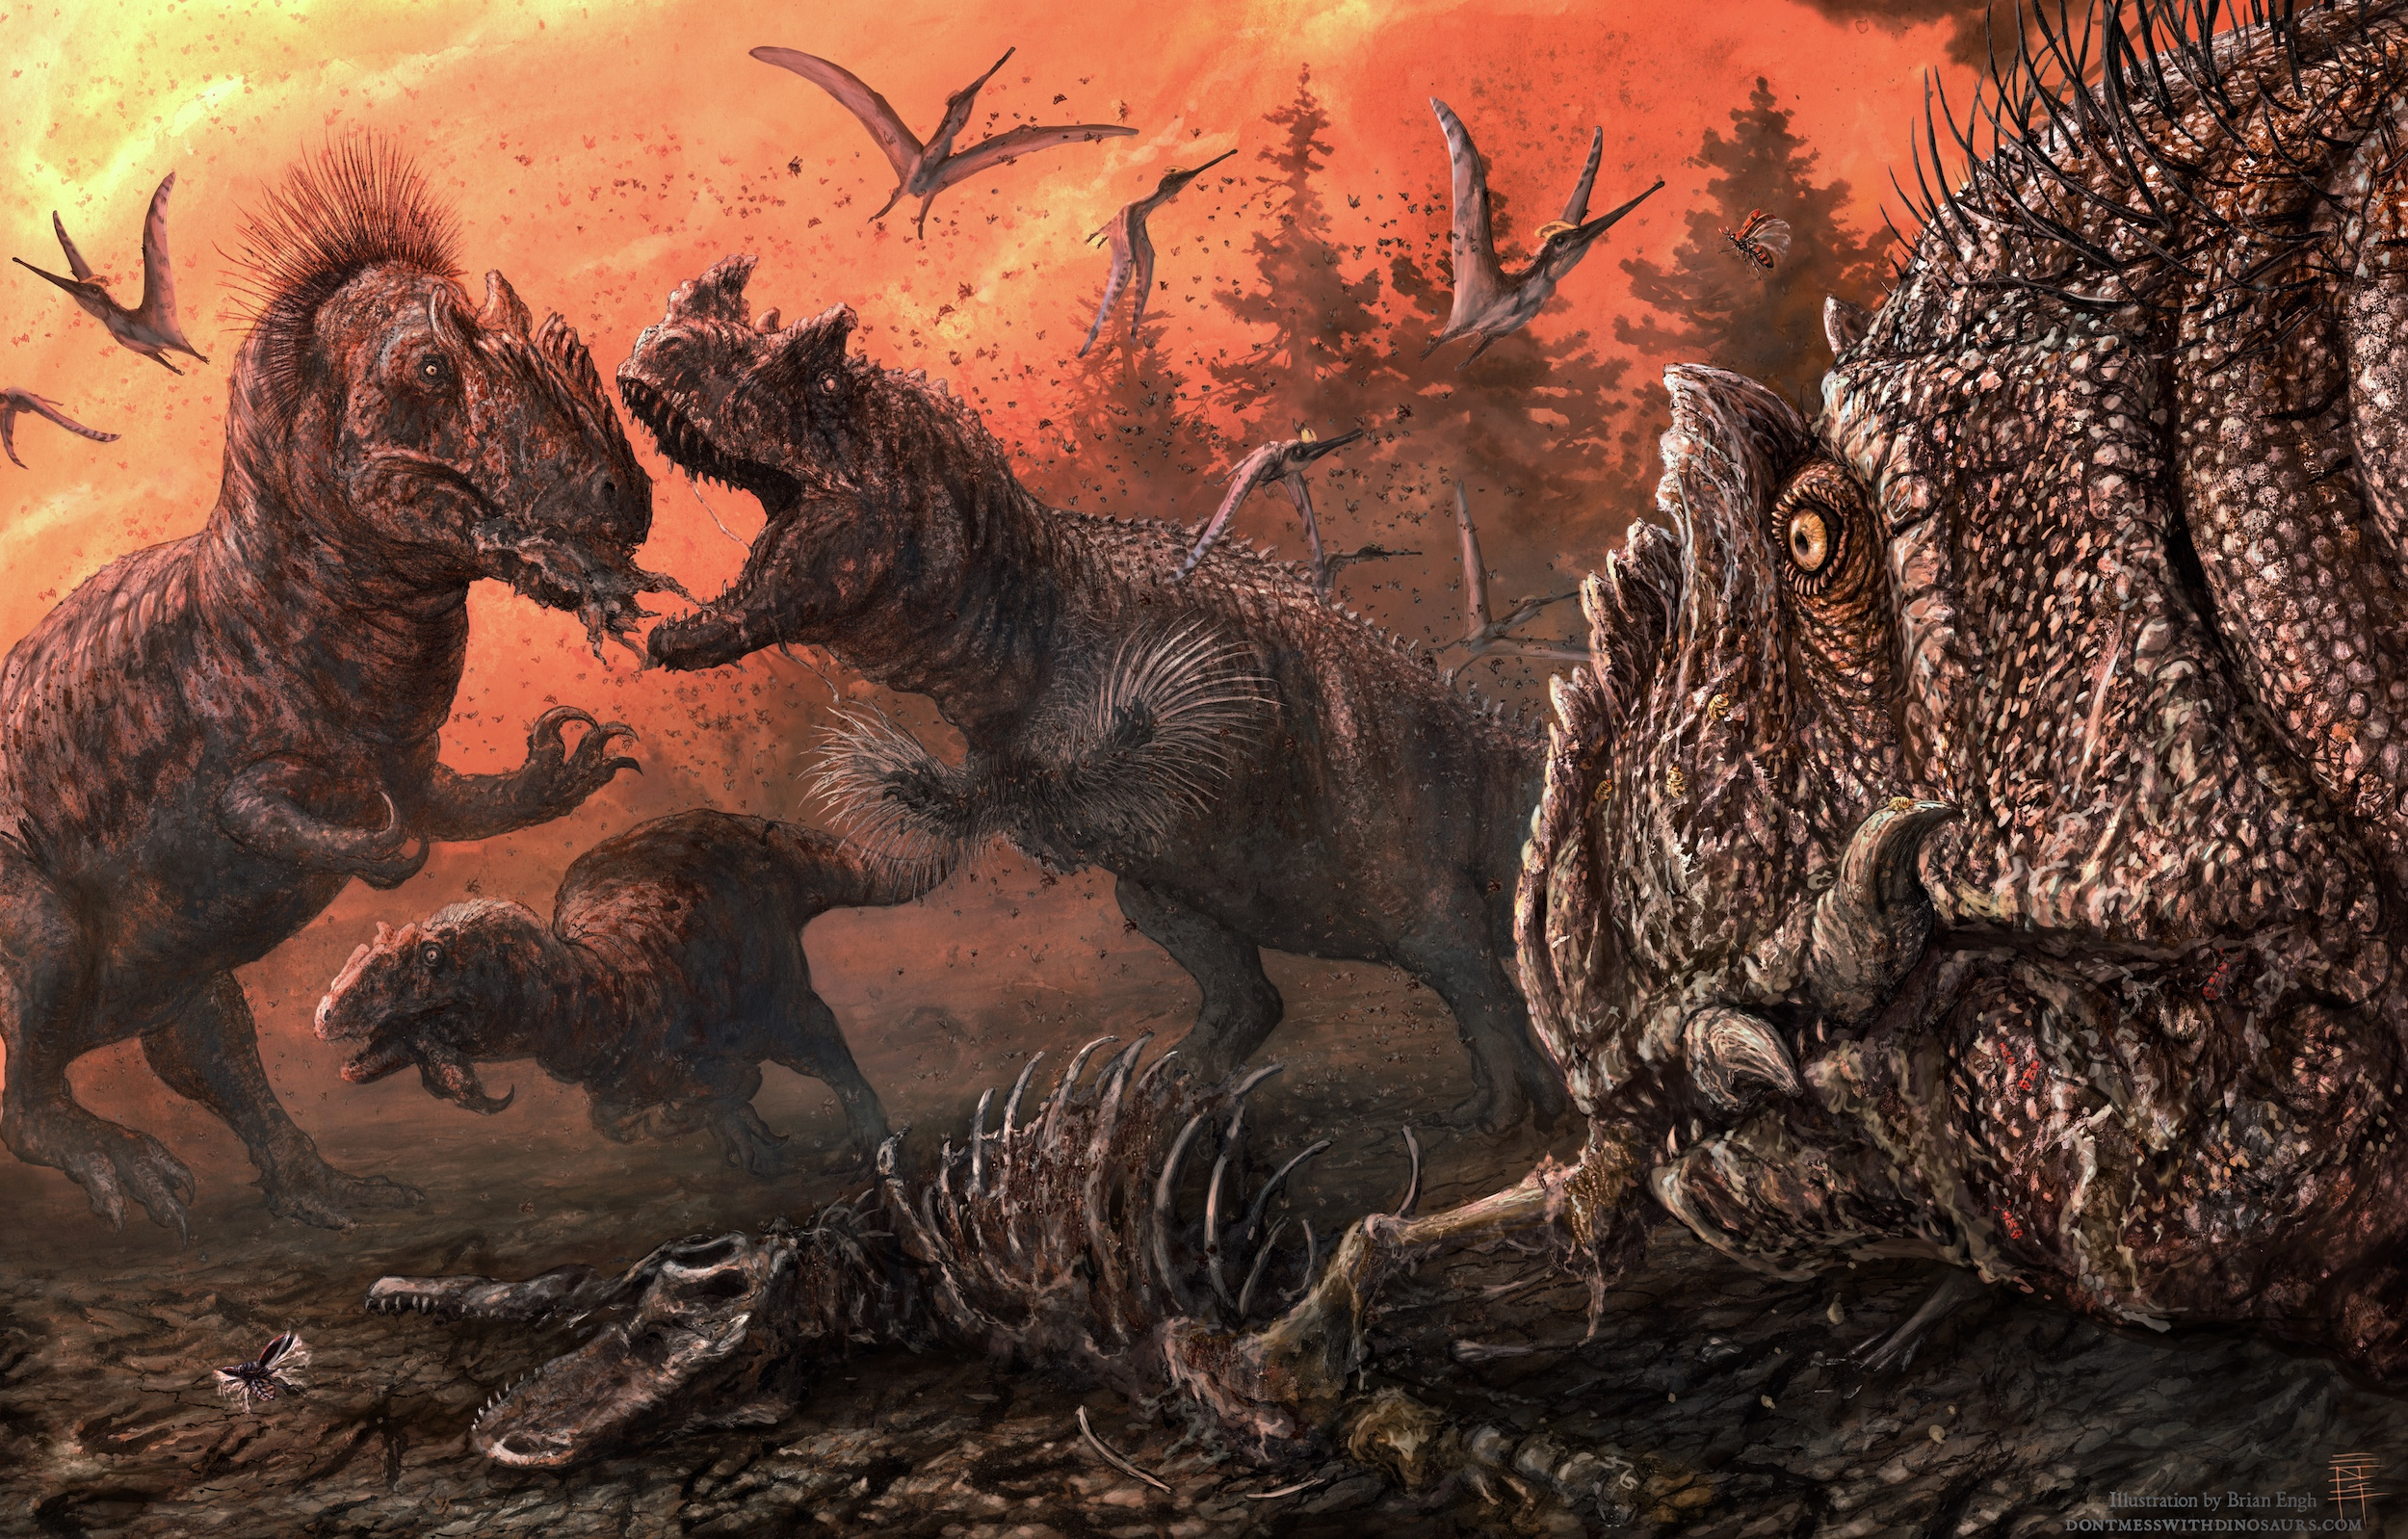 With food scarce, carnivorous dinosaurs resorted to cannibalism.